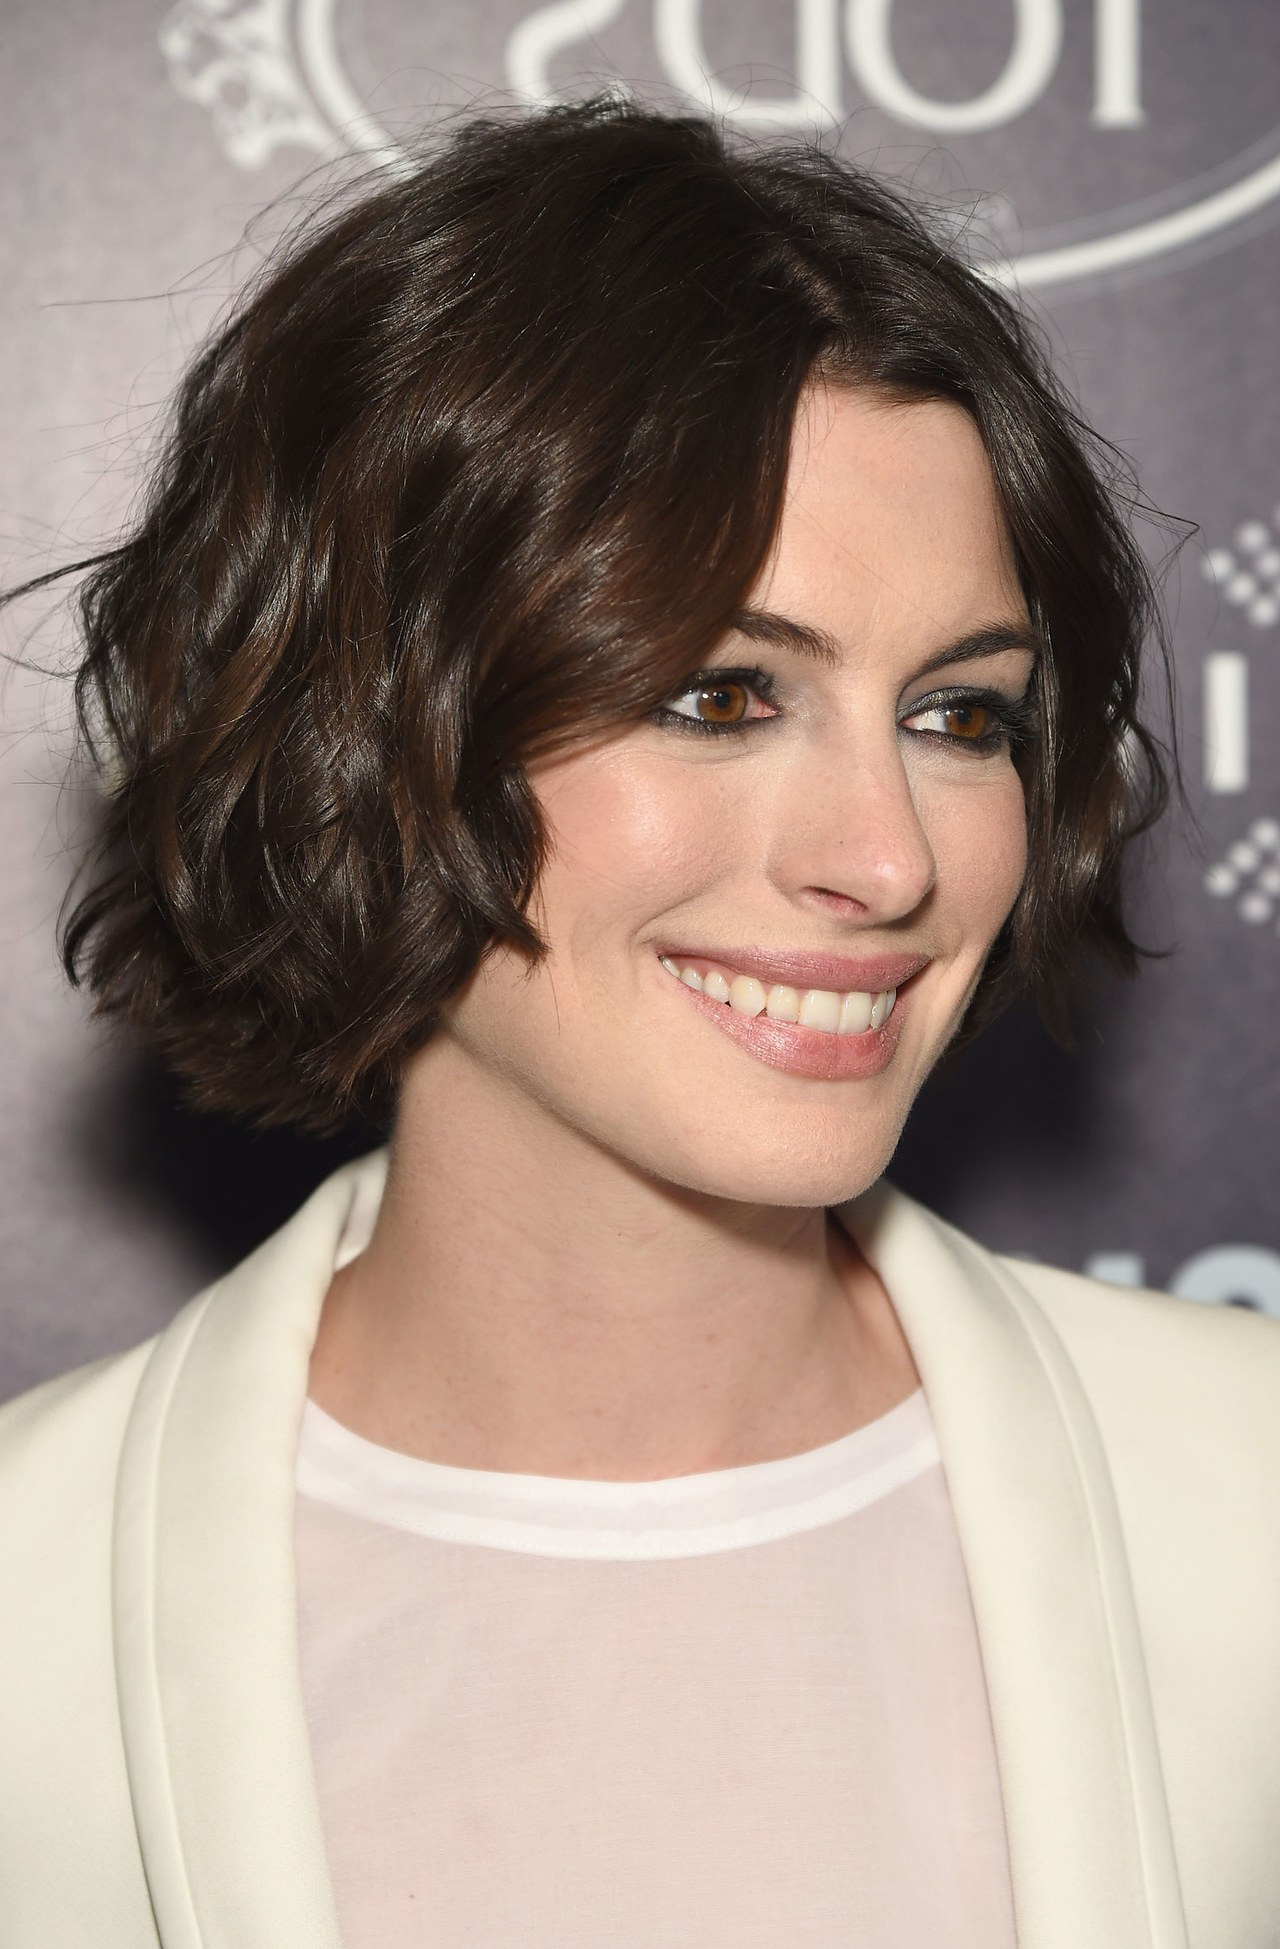 Anne Hathaway Perfects The Short Beachy Wave Hairstyle | Glamour Regarding Anne Hathaway Short Hairstyles (Gallery 13 of 25)